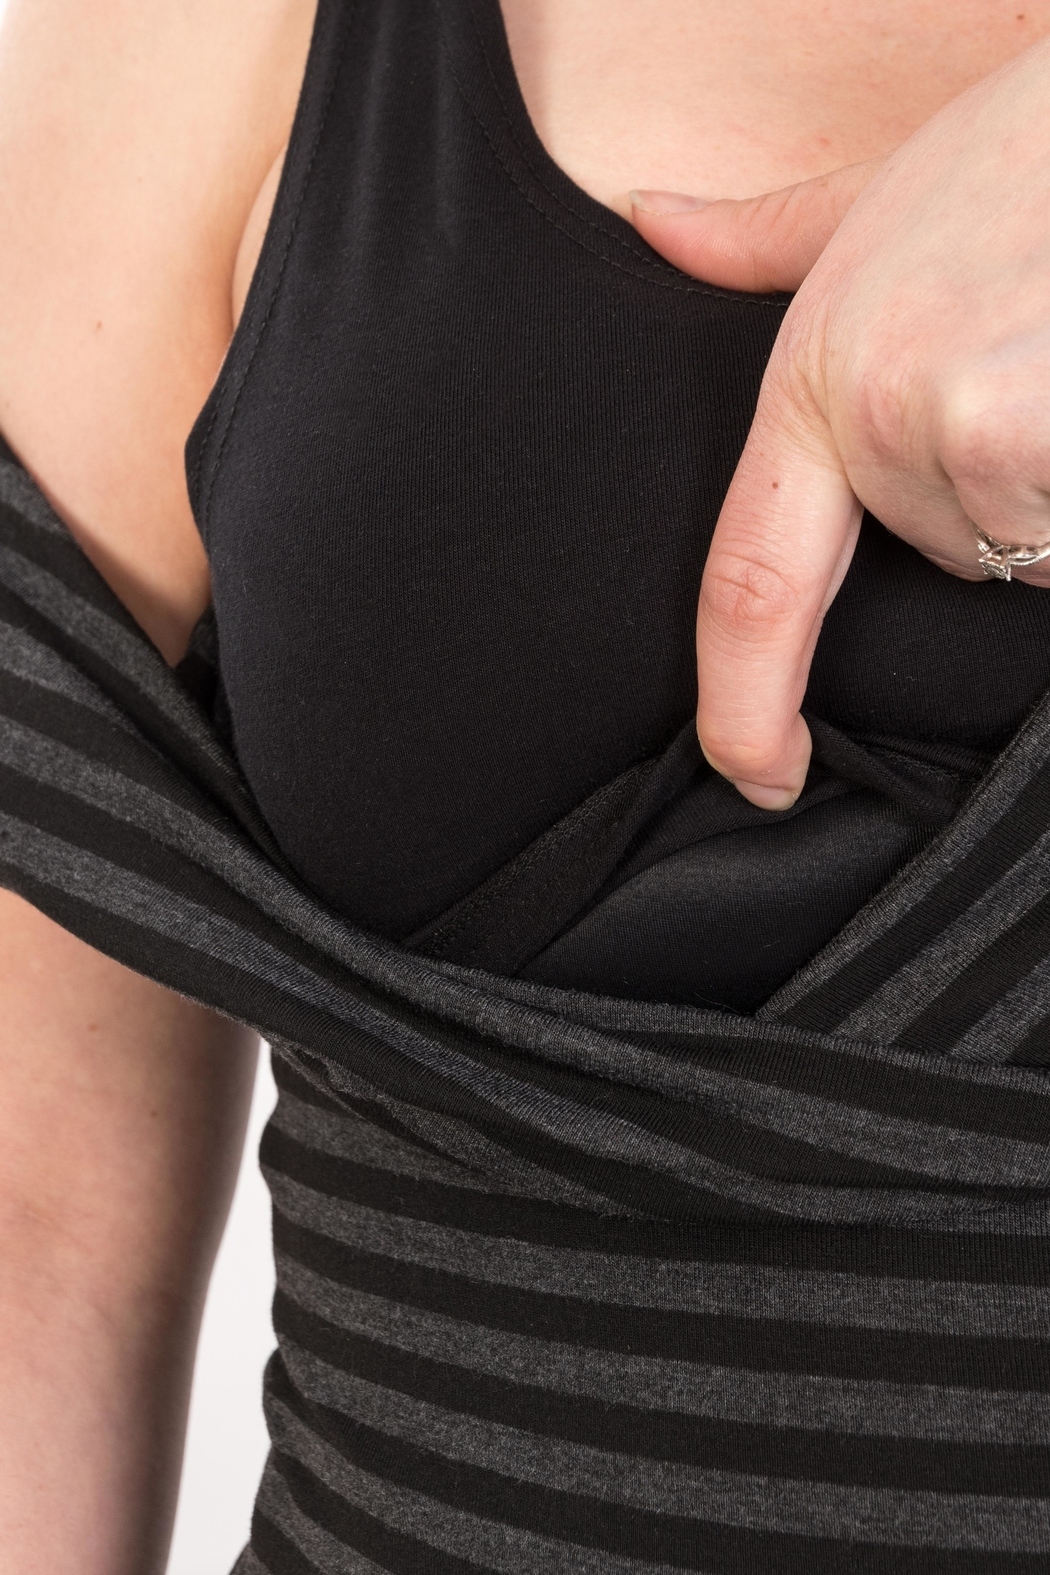 fb77eb78a715b Bellybedaine Sport Maternity Tank from Canada by BellyBedaine ...